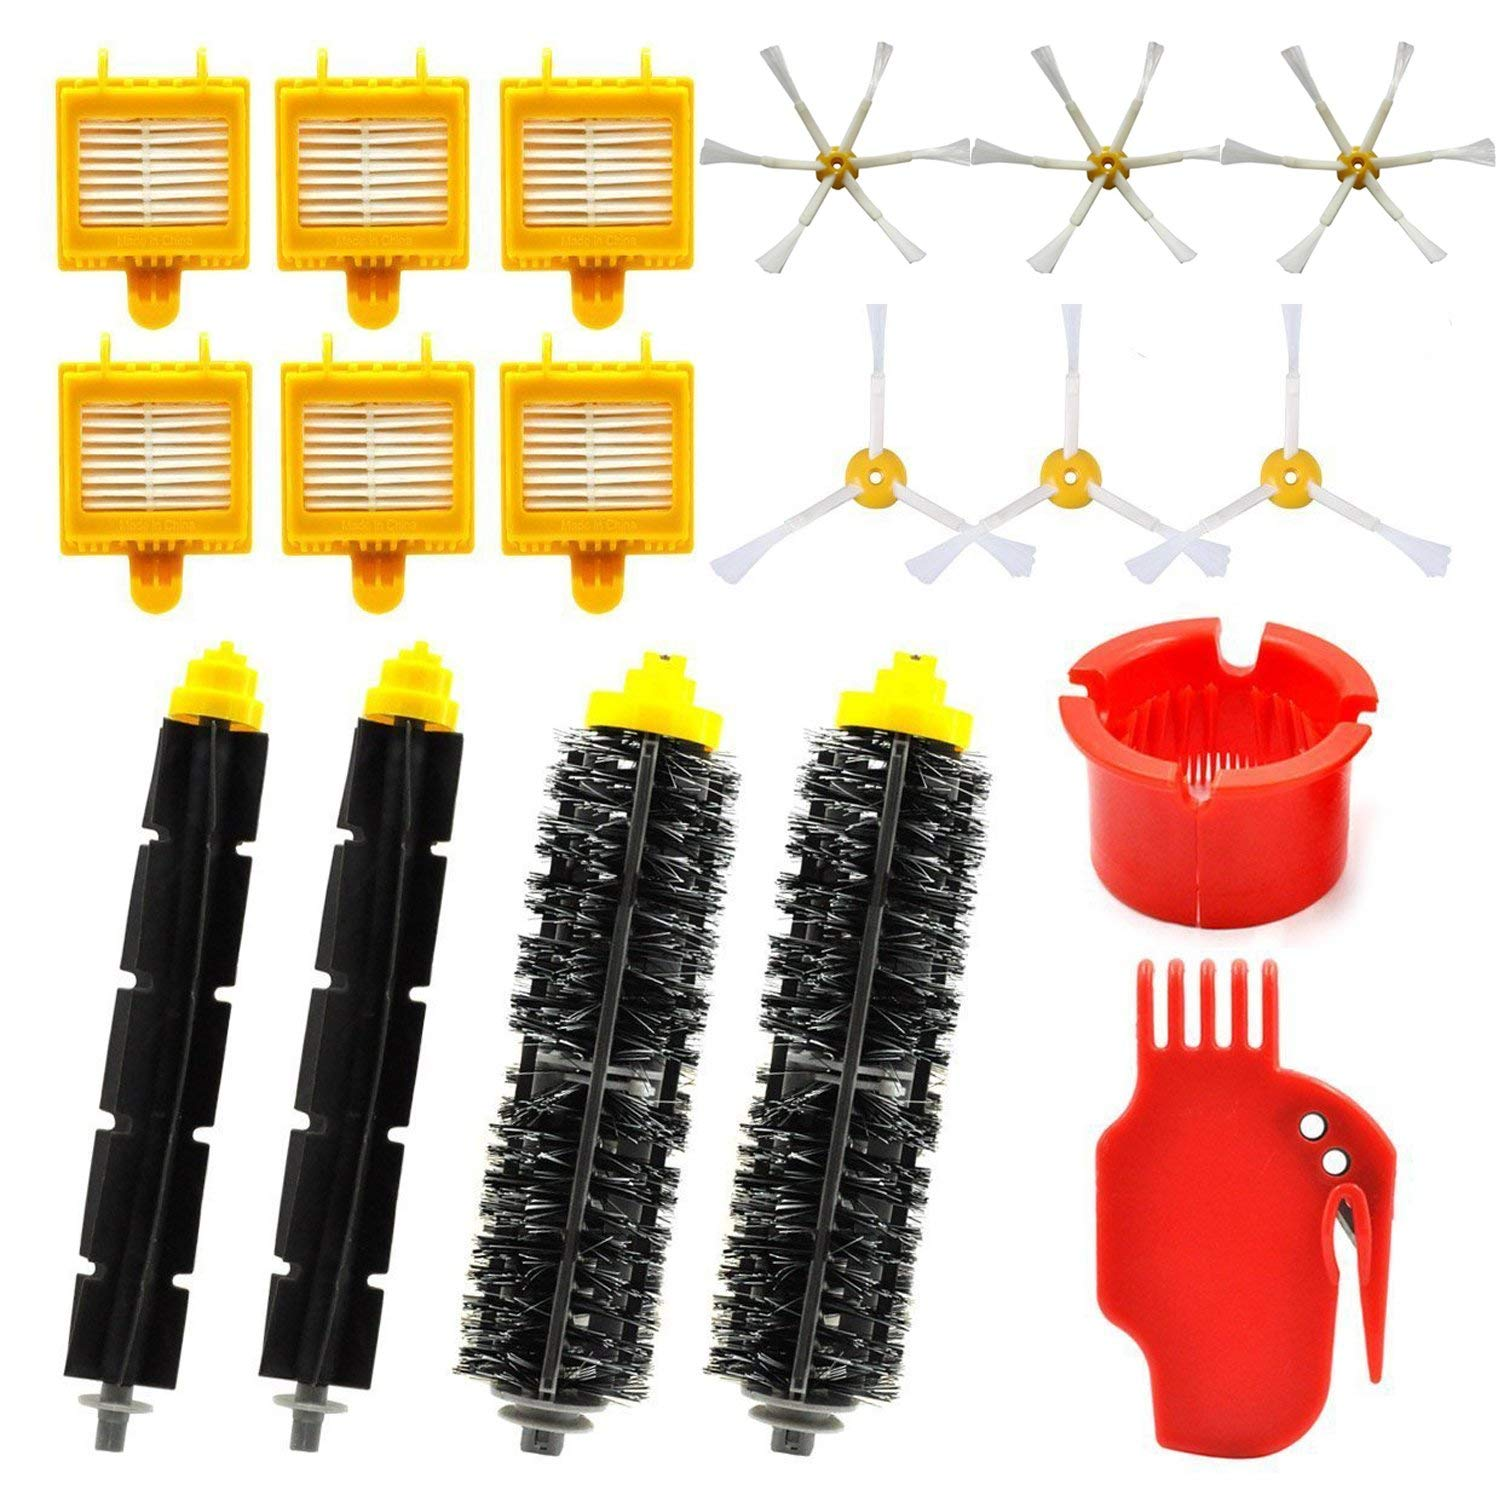 vacuum cleaner parts Replacement Parts Kit for iRobot Roomba 700 Series - Accessories Kit for Roomba 760 770 780 790 (18 in 1)